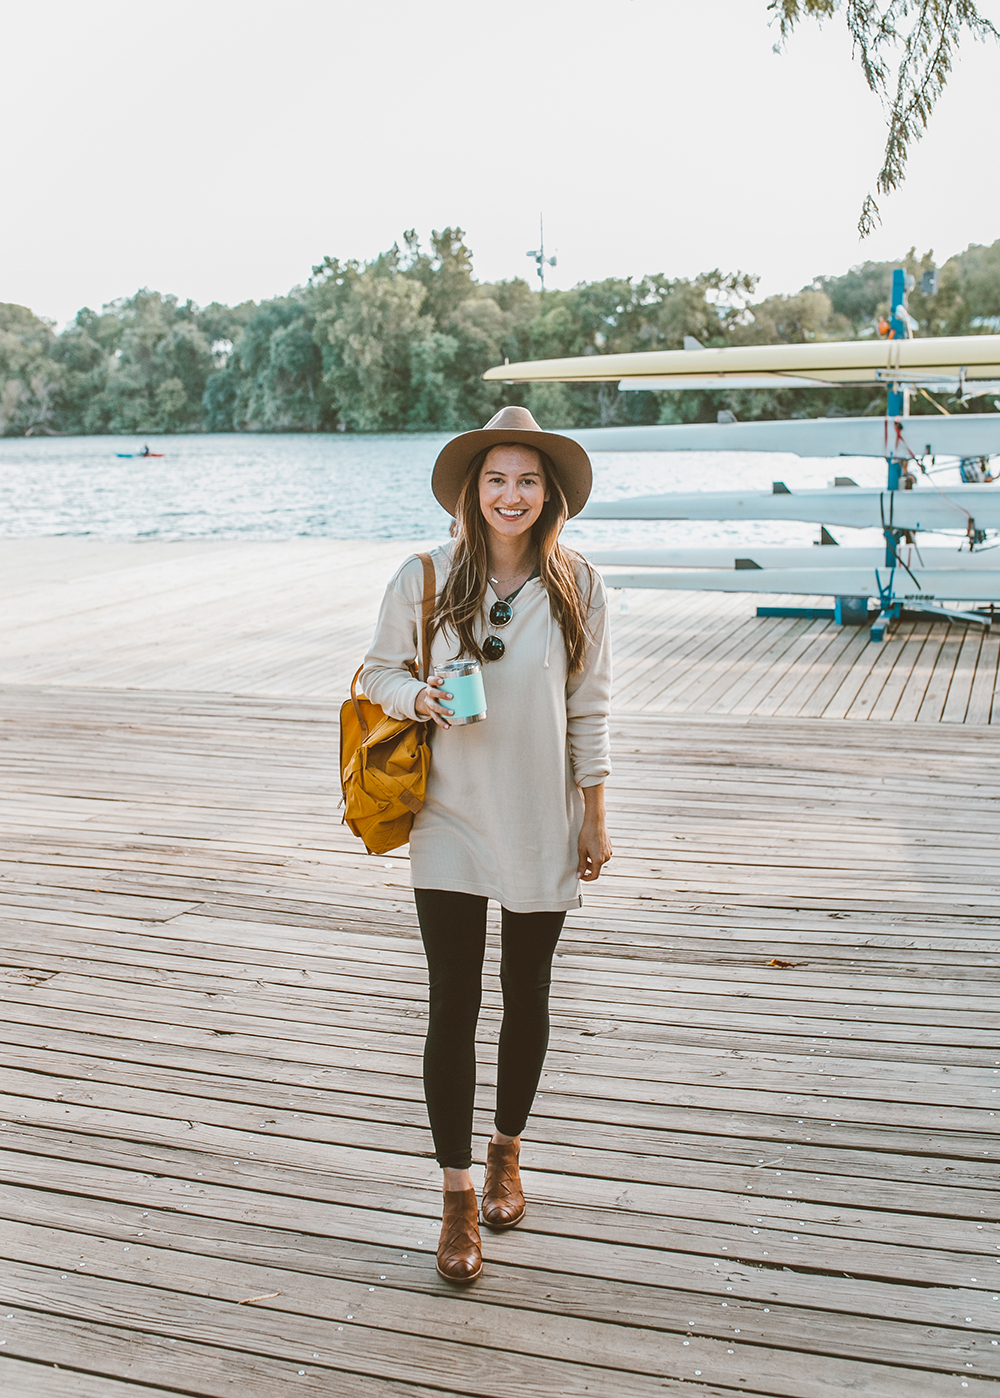 livvyland-blog-olivia-watson-canoe-lady-bird-lake-austin-texas-lifestyle-fashion-blogger-backcountry-patagonia-waffle-hooded-knit-tunic-3